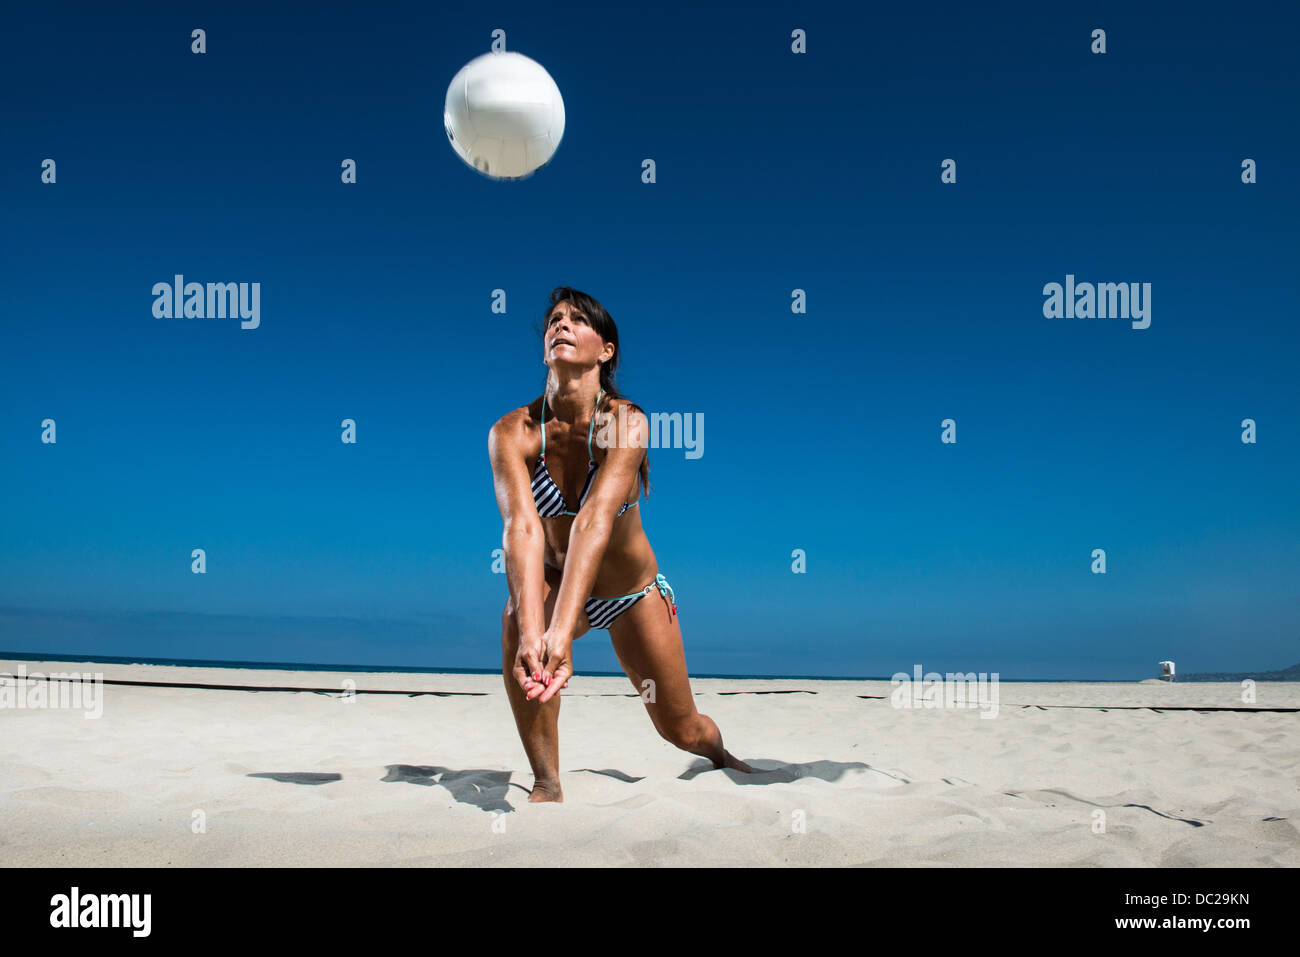 Female beach volleyball player digging ball - Stock Image